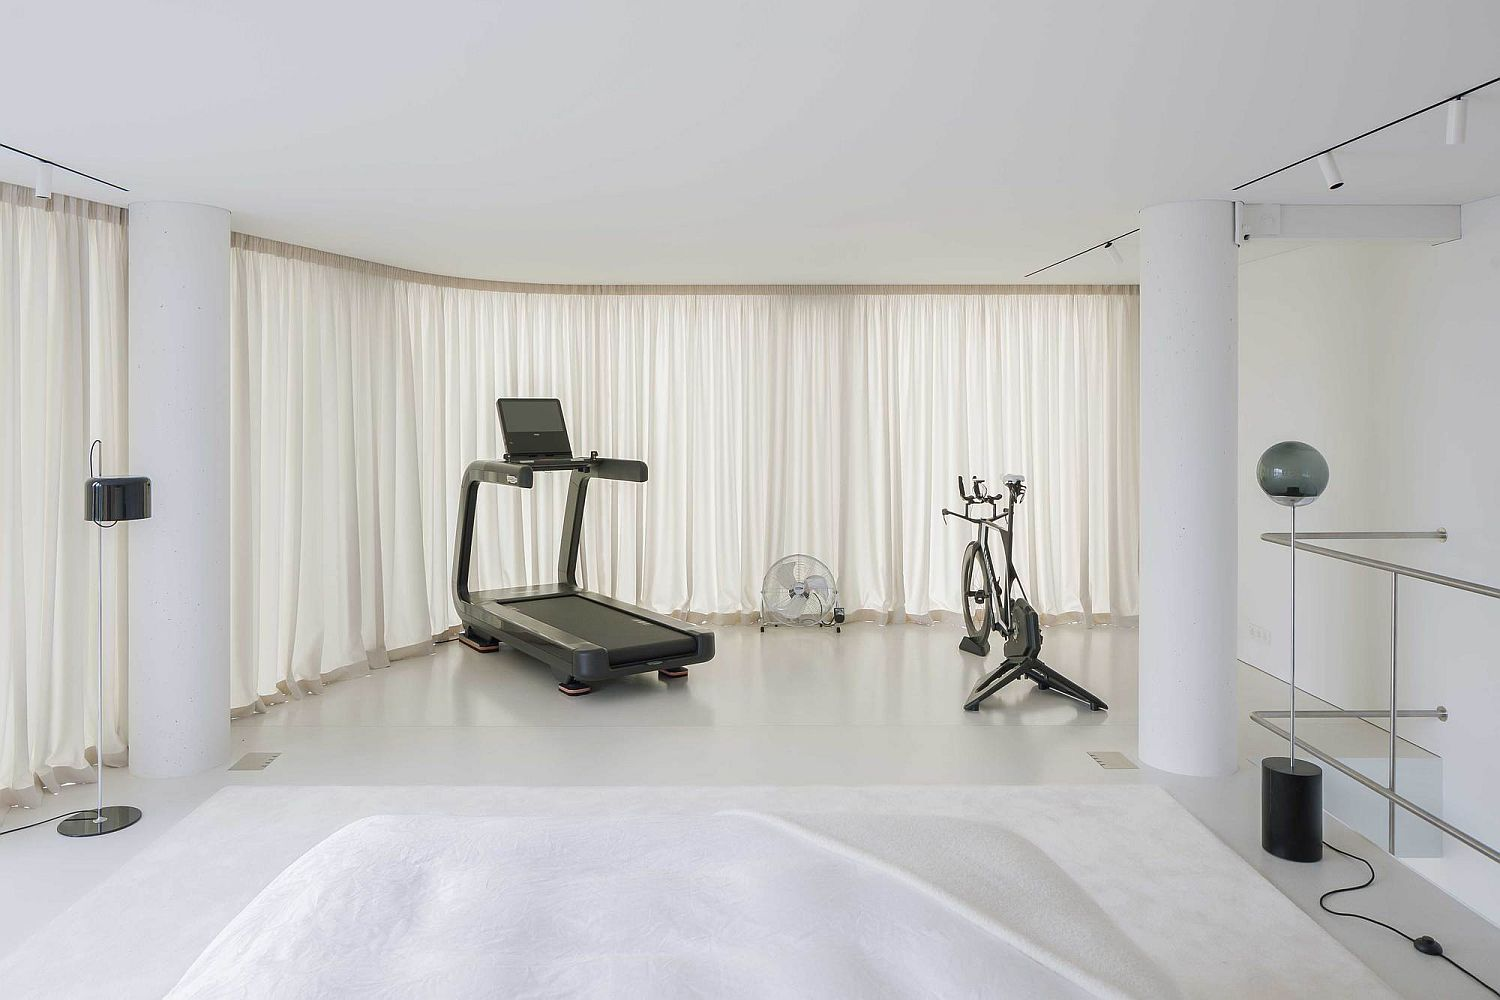 Upper level workout area with lovely view of the city outside